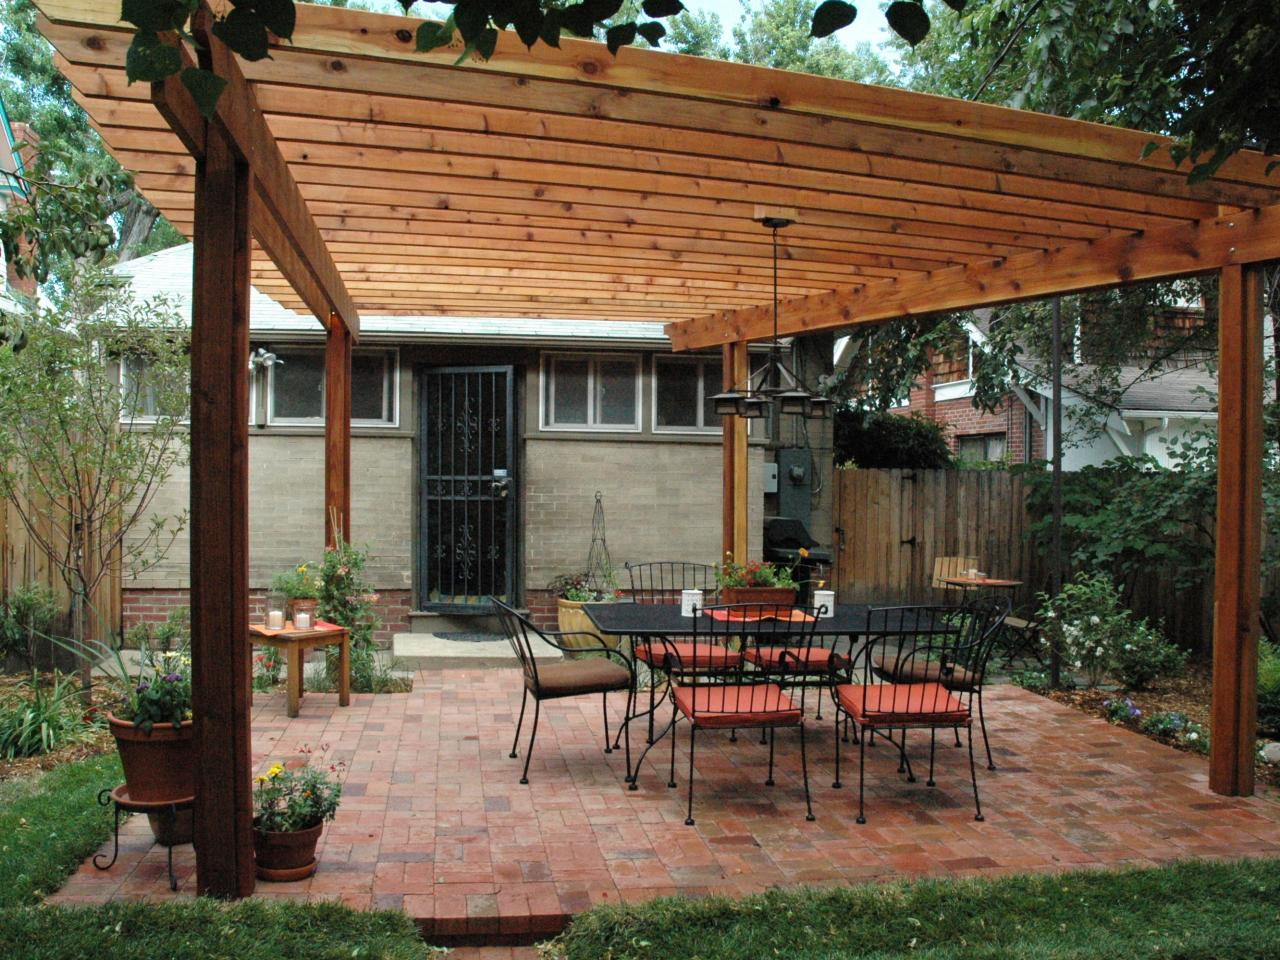 Arbor Installation-Carrollton TX Professional Landscapers & Outdoor Living Designs-We offer Landscape Design, Outdoor Patios & Pergolas, Outdoor Living Spaces, Stonescapes, Residential & Commercial Landscaping, Irrigation Installation & Repairs, Drainage Systems, Landscape Lighting, Outdoor Living Spaces, Tree Service, Lawn Service, and more.